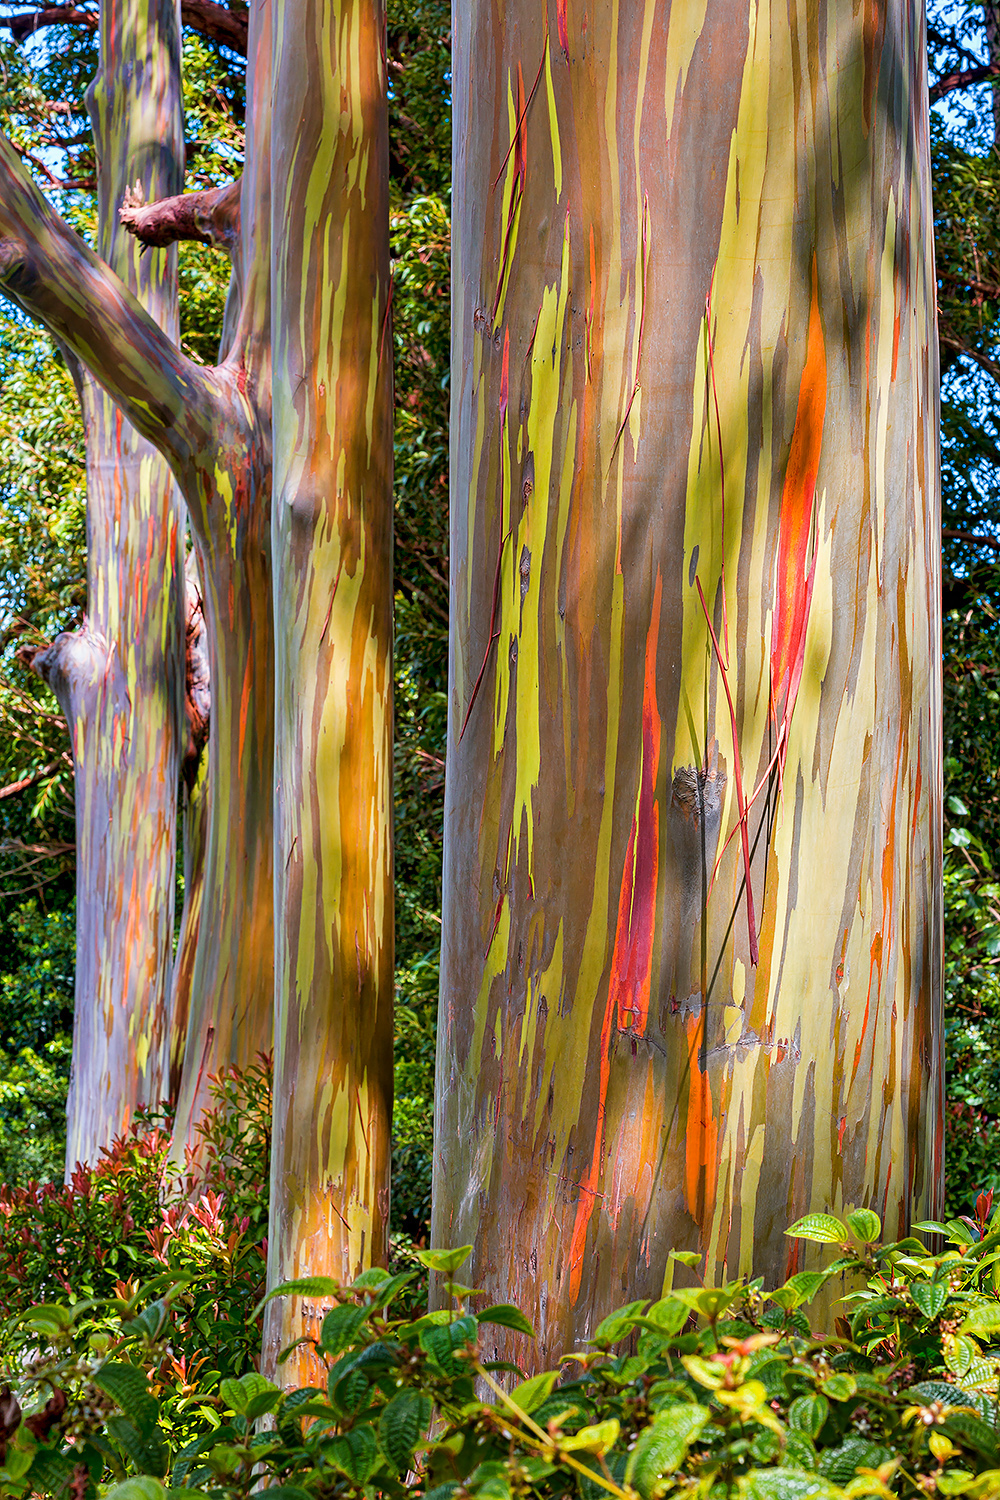 Painted Eucalyptus Trees on Maui along the road to Hana.